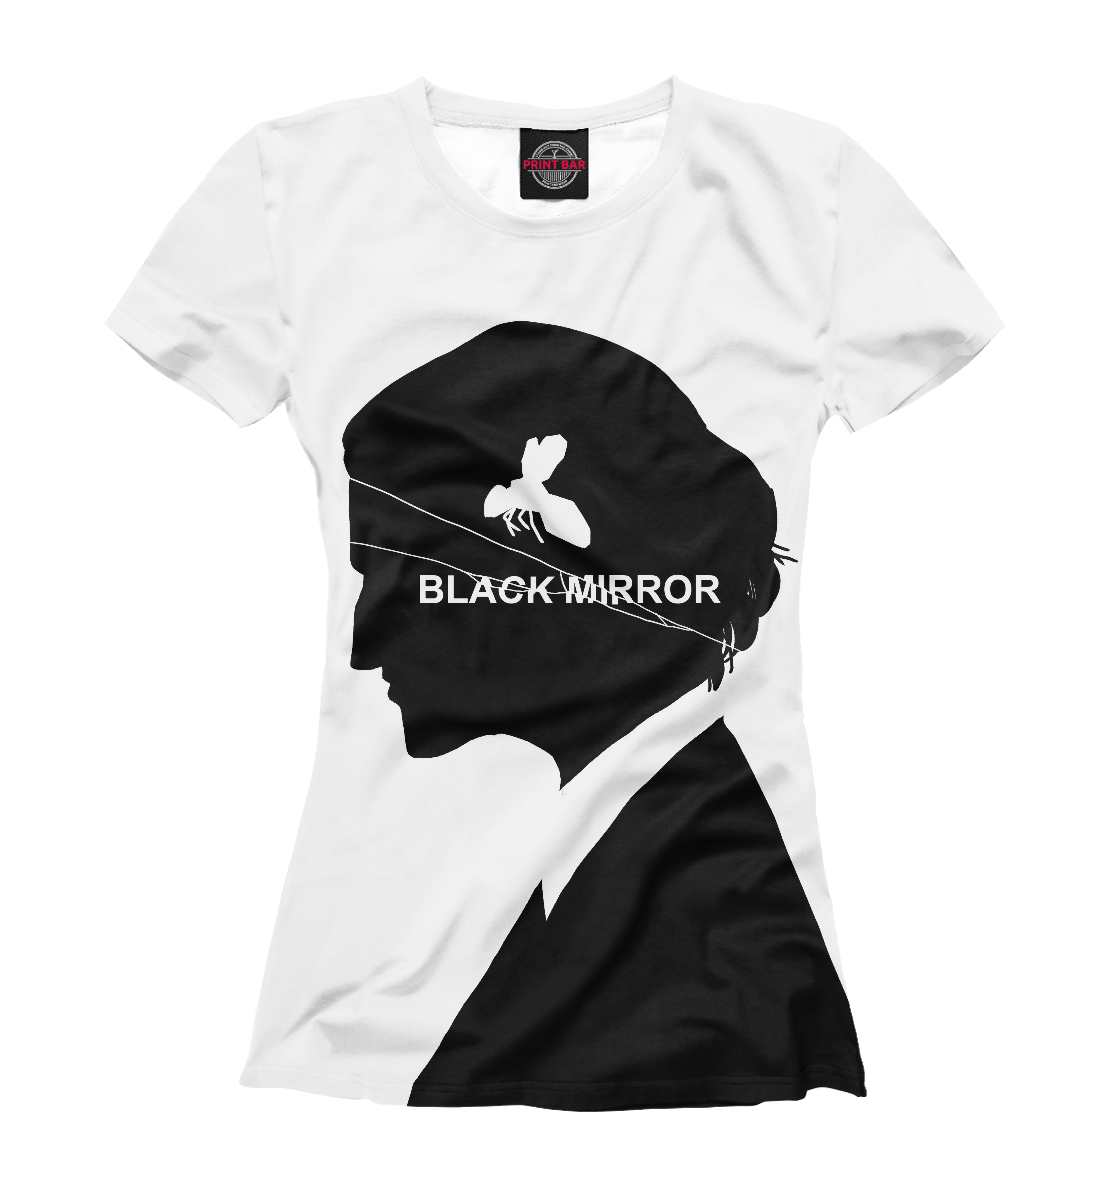 Купить Black Mirror, Printbar, Футболки, BLM-705126-fut-1